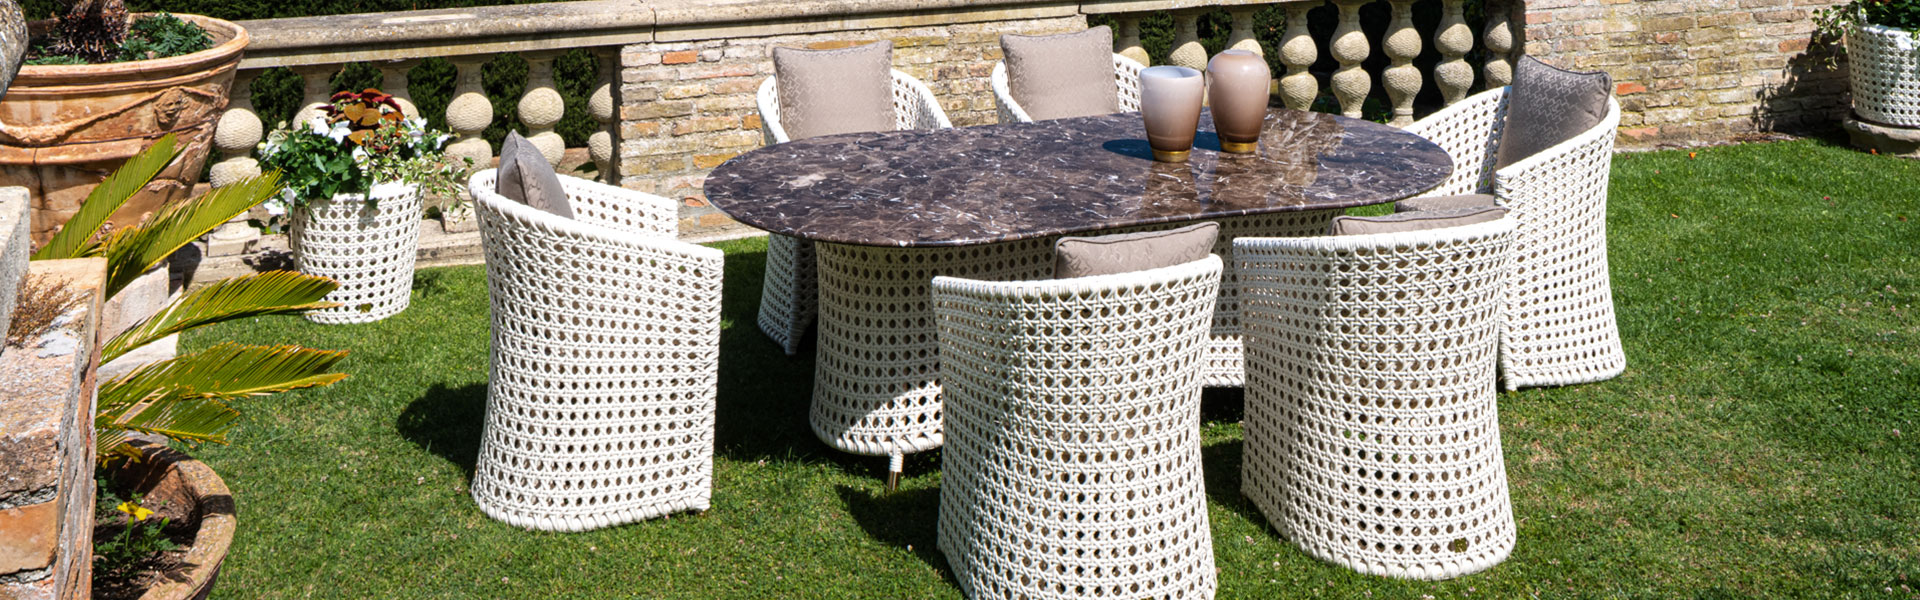 customized outdoor furniture for a